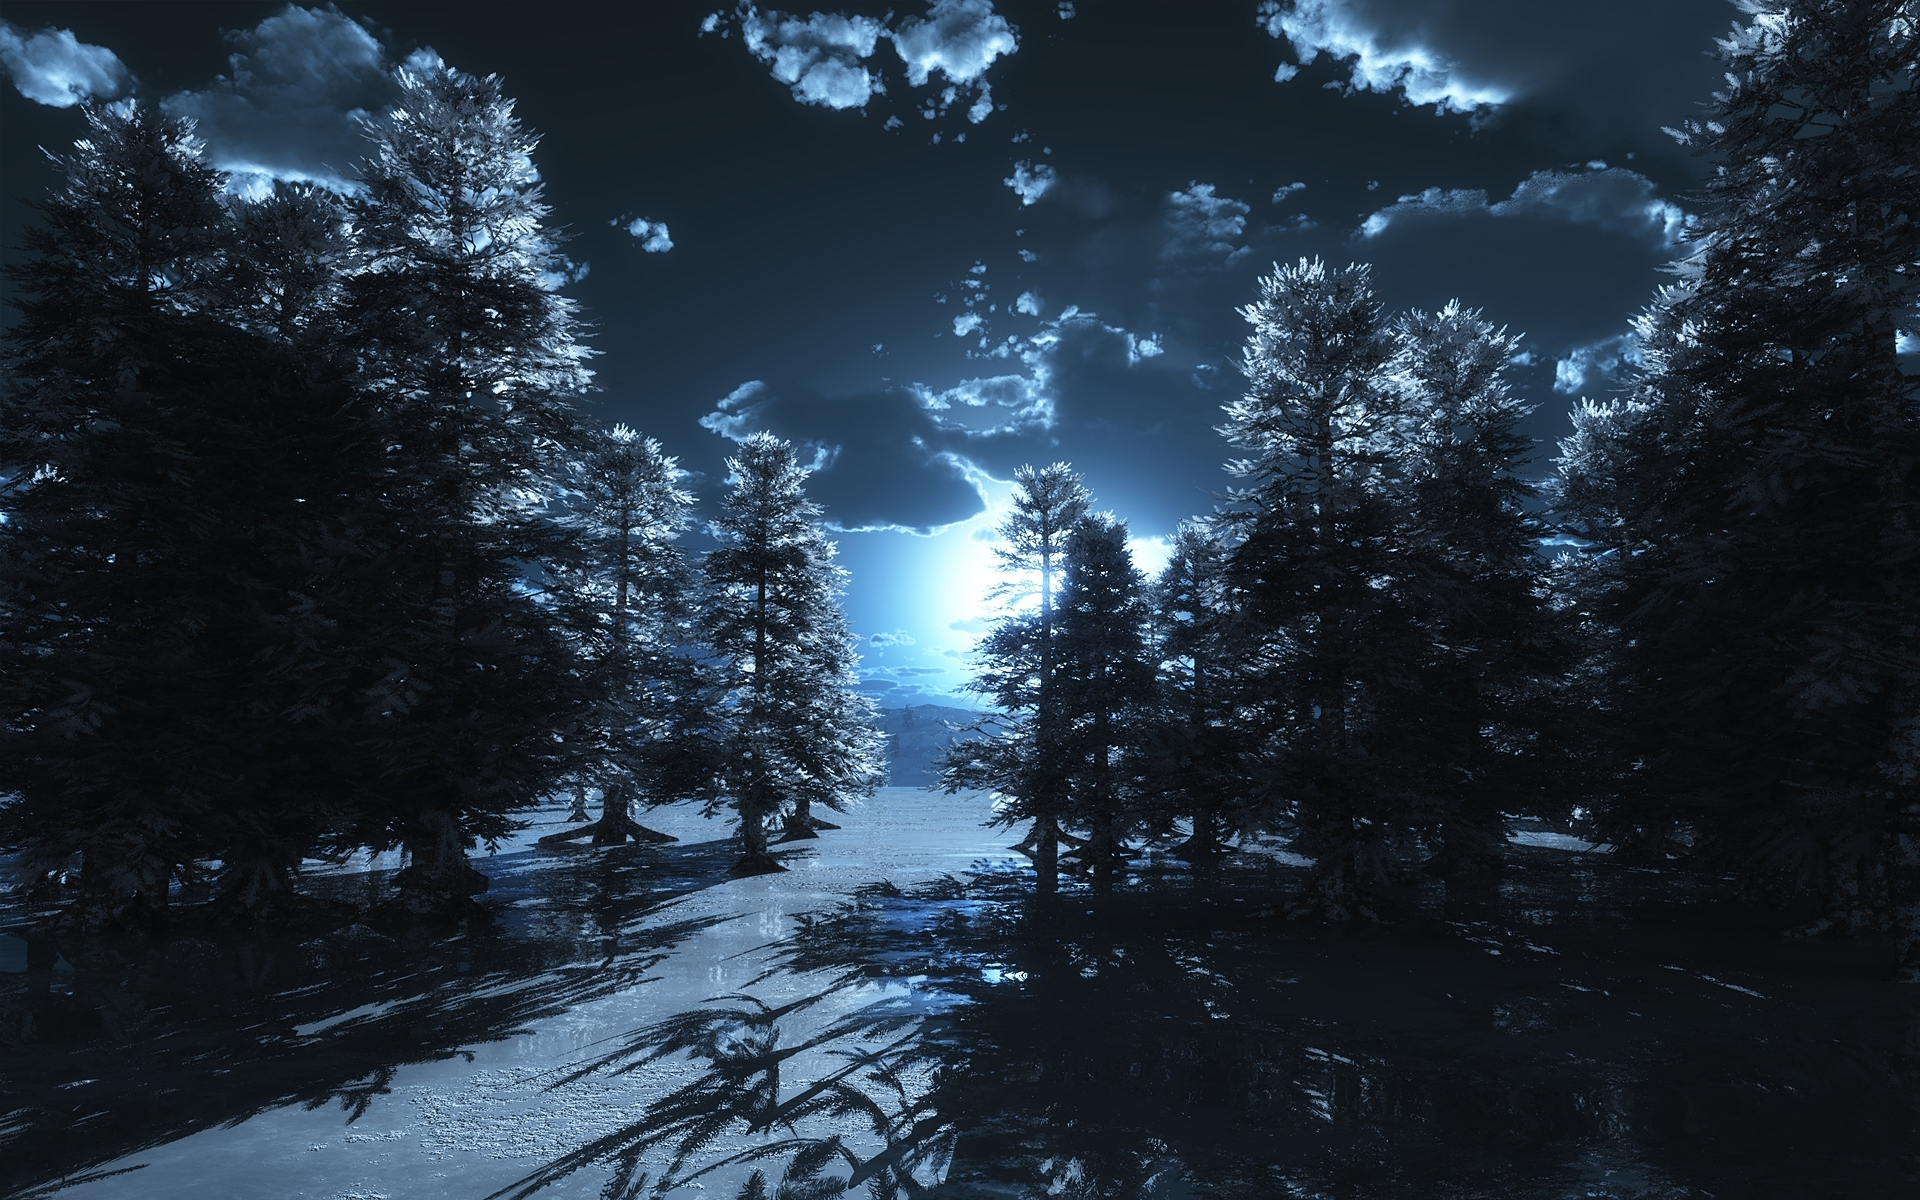 Winter Forest At Night Wallpaper Wide Zabrdast Com Card From